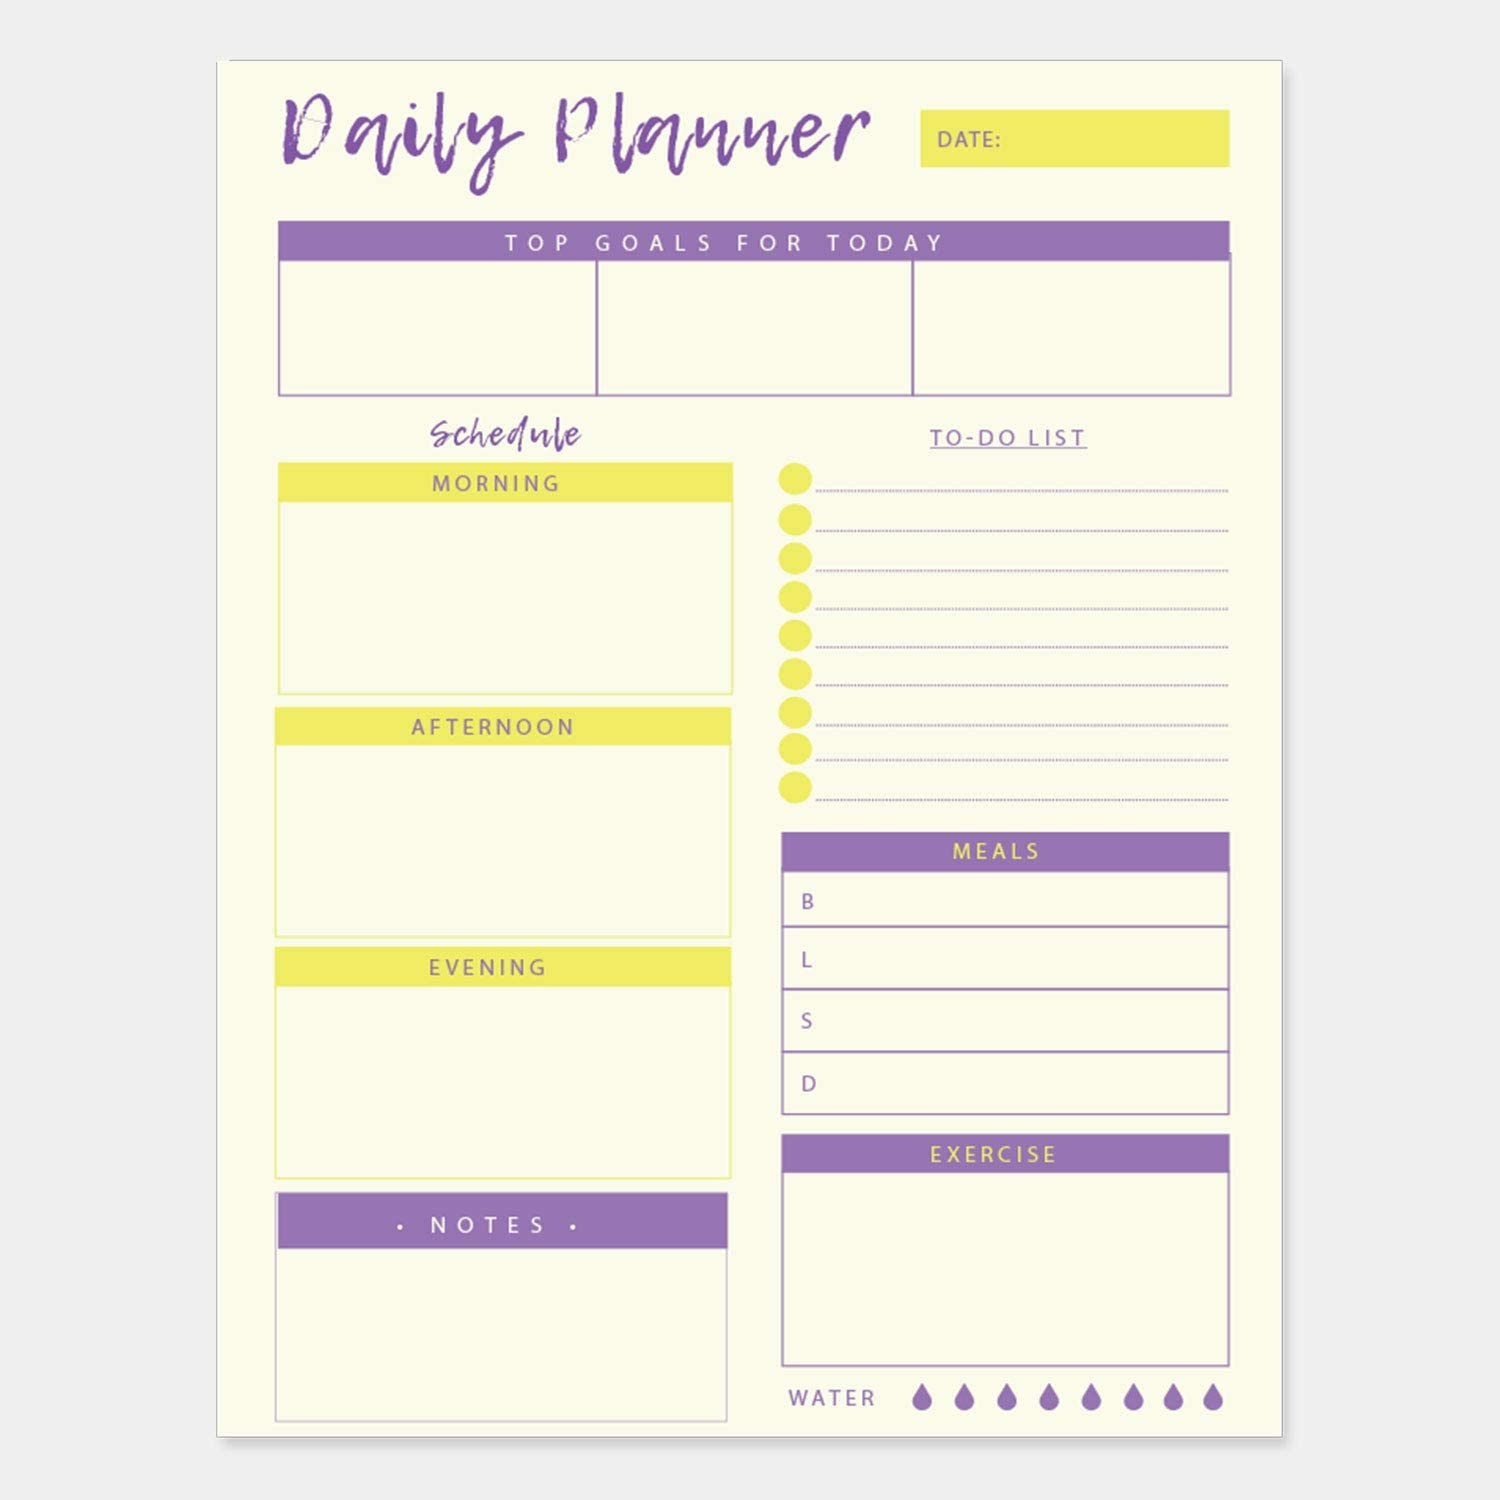 Daily Planner - 50 Sheets of 8.5x11 Inches Undated Checklist Organizer Tear-Off Pads with Field Task Notes- For Home-Work Journal, Personal Goal, Scheduling and Planning To-Do List - Yellow and Violet